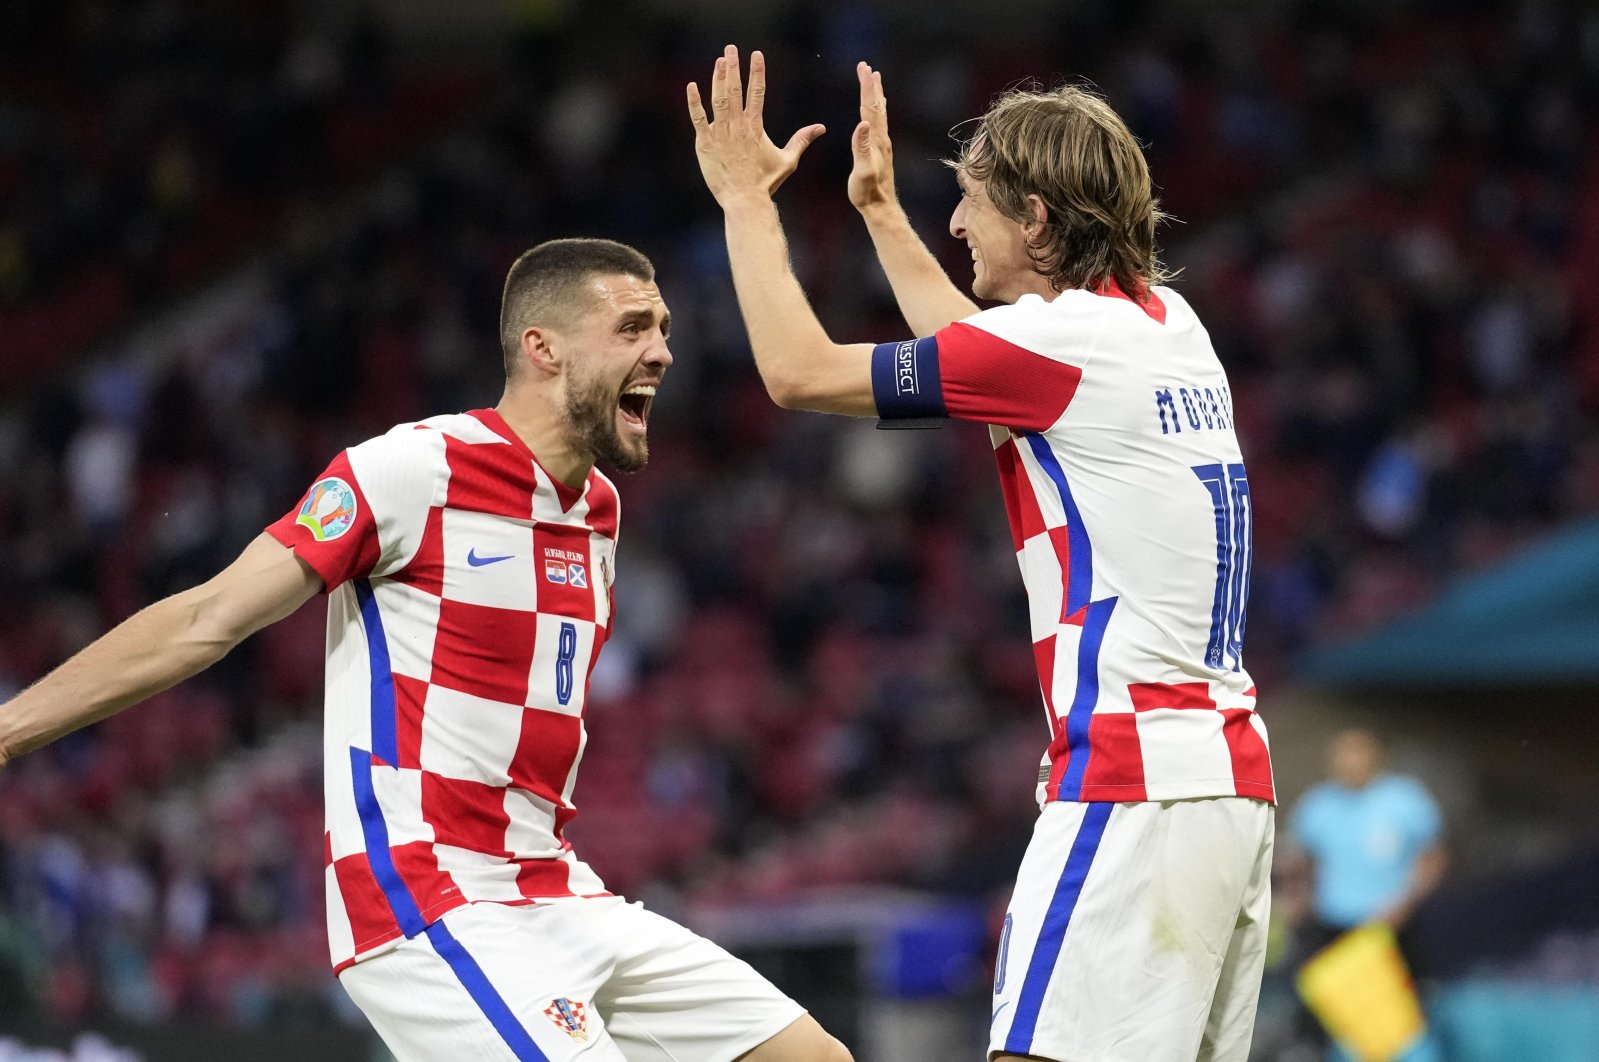 Croatia's Mateo Kovacic (L) and Luka Modric celebrate after Ivan Perisic scored their third goal during the Euro 2020 Group D match against Scotland at the Hampden Park Stadium, Glasgow, Scotland, June 22, 2021. (AP Photo)